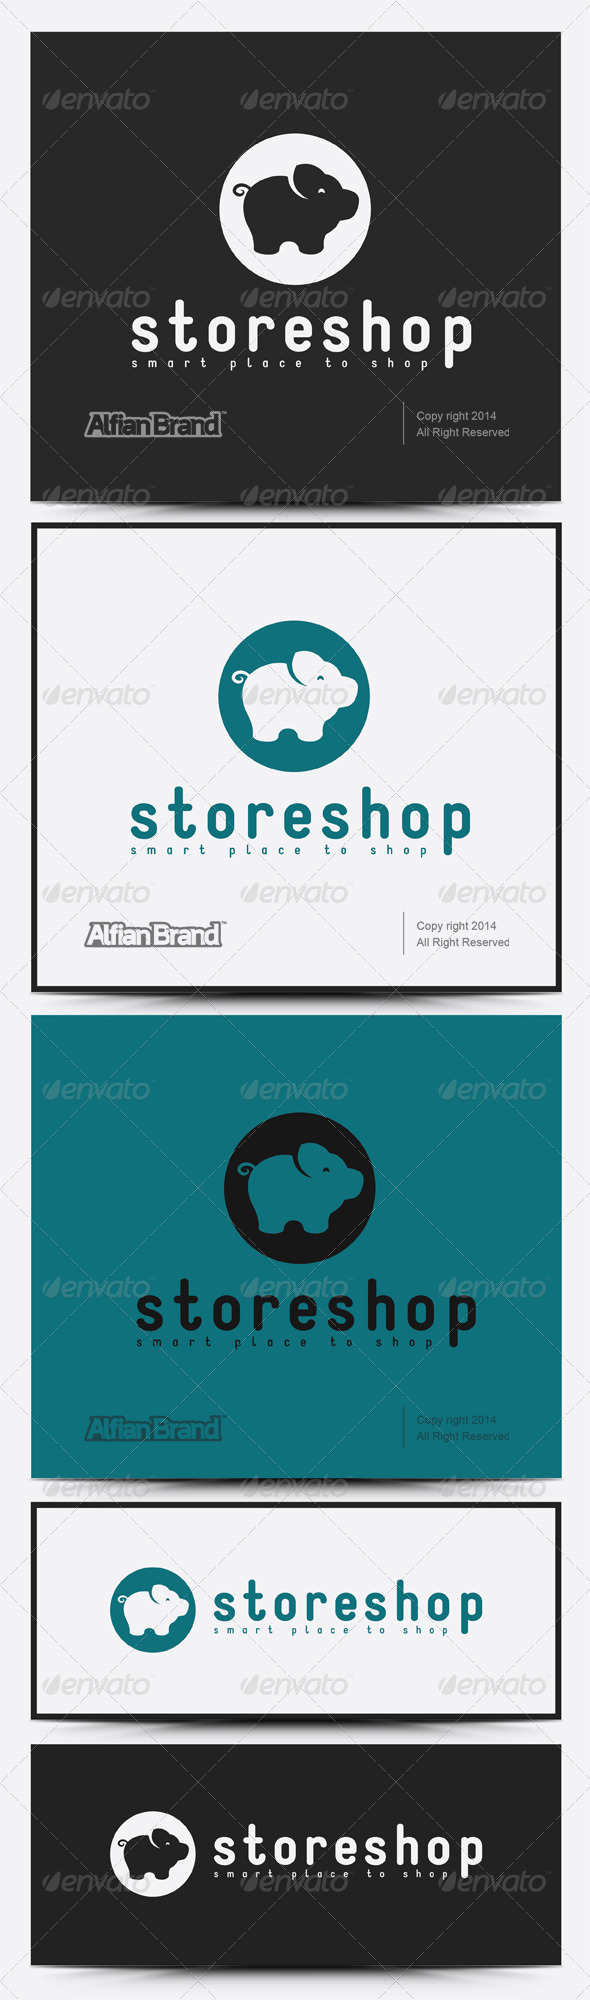 GraphicRiver Store Shop Logo 7761567